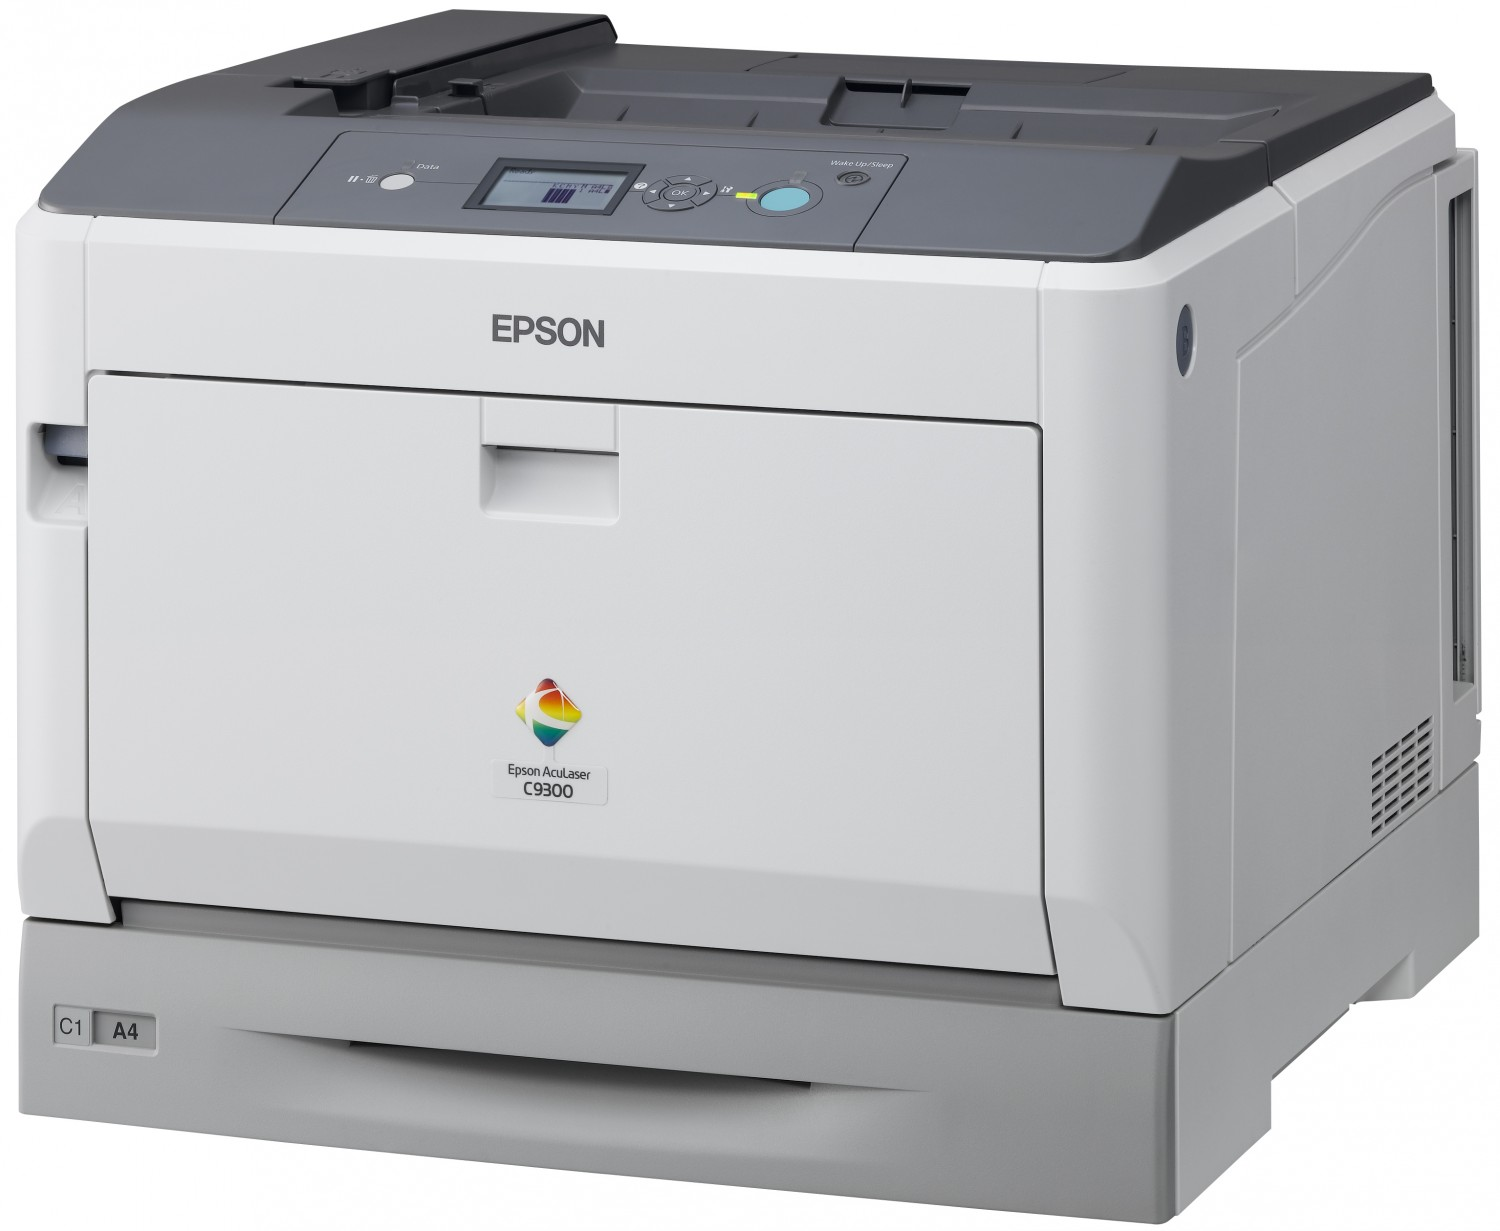 epson ACULASER C9300N driver colour printer download for window